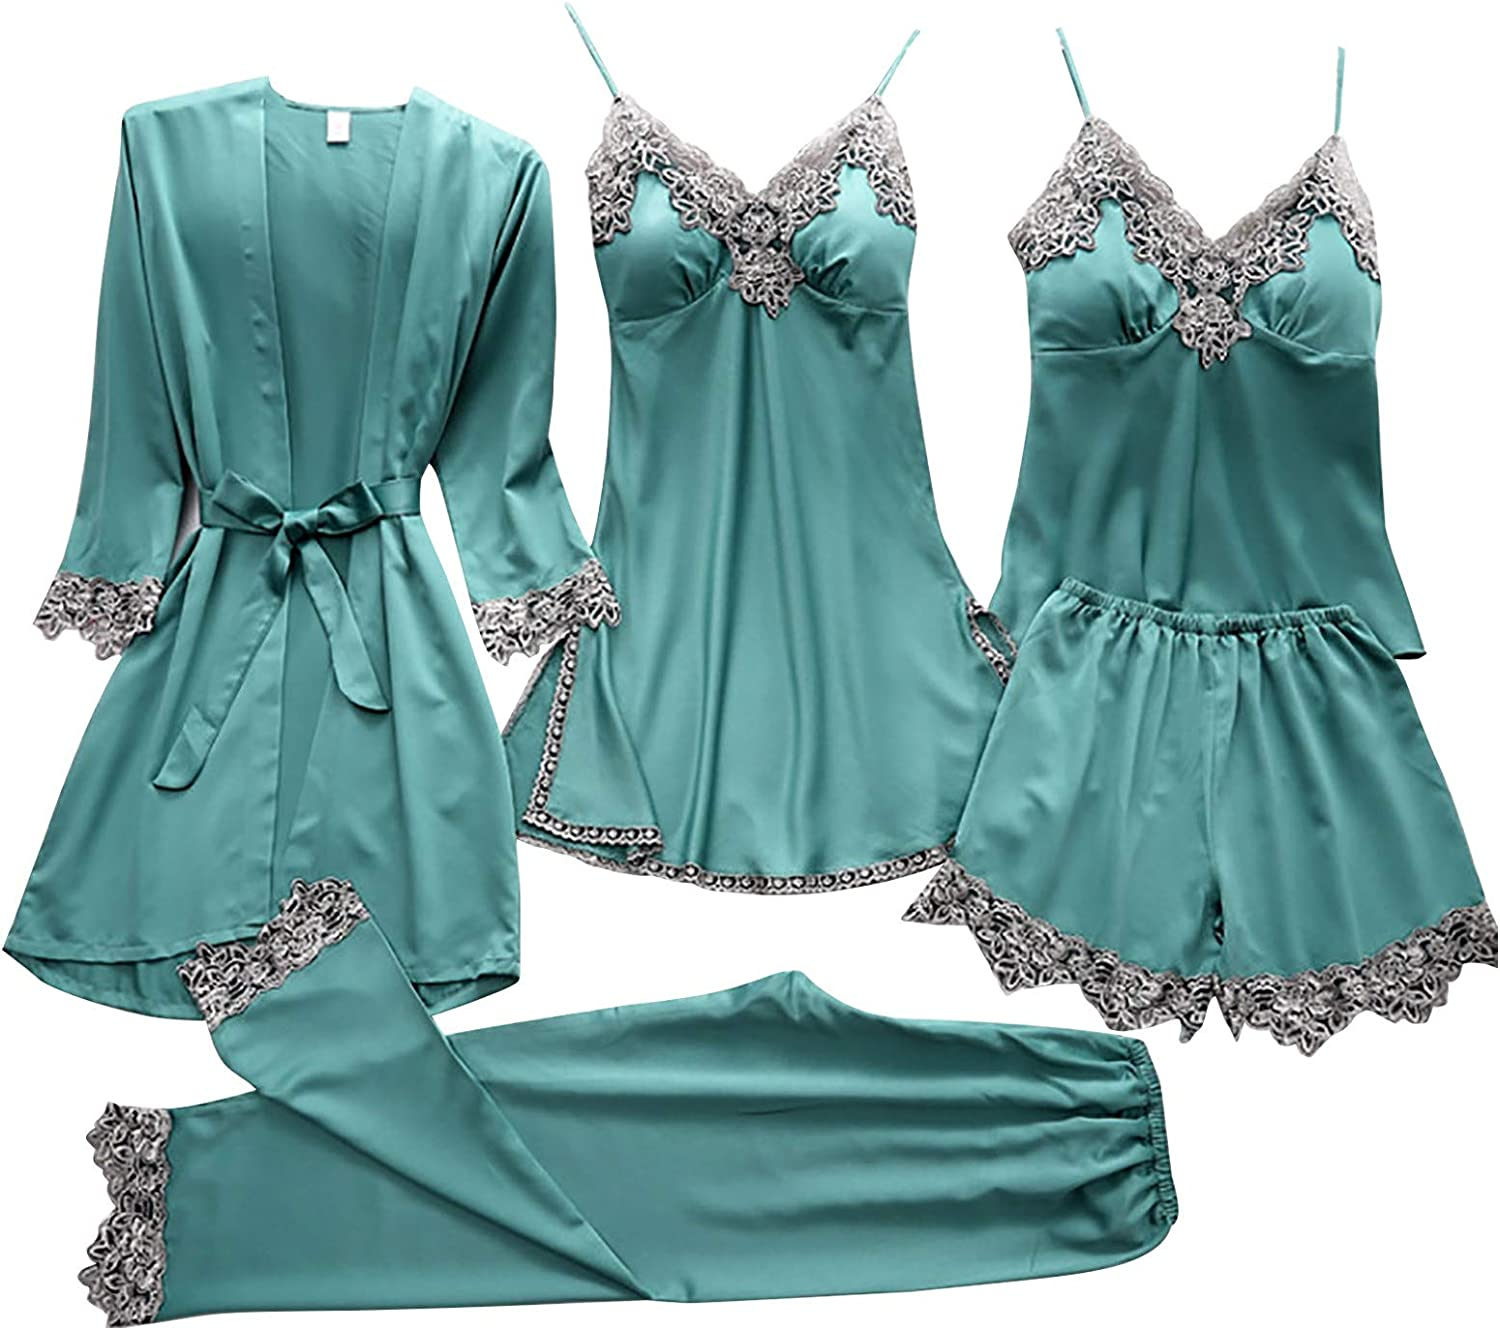 Women's 5 Pieces Satin Floral Lace Cami Top Lingerie Pajama Set with Robe Nightgown Pants